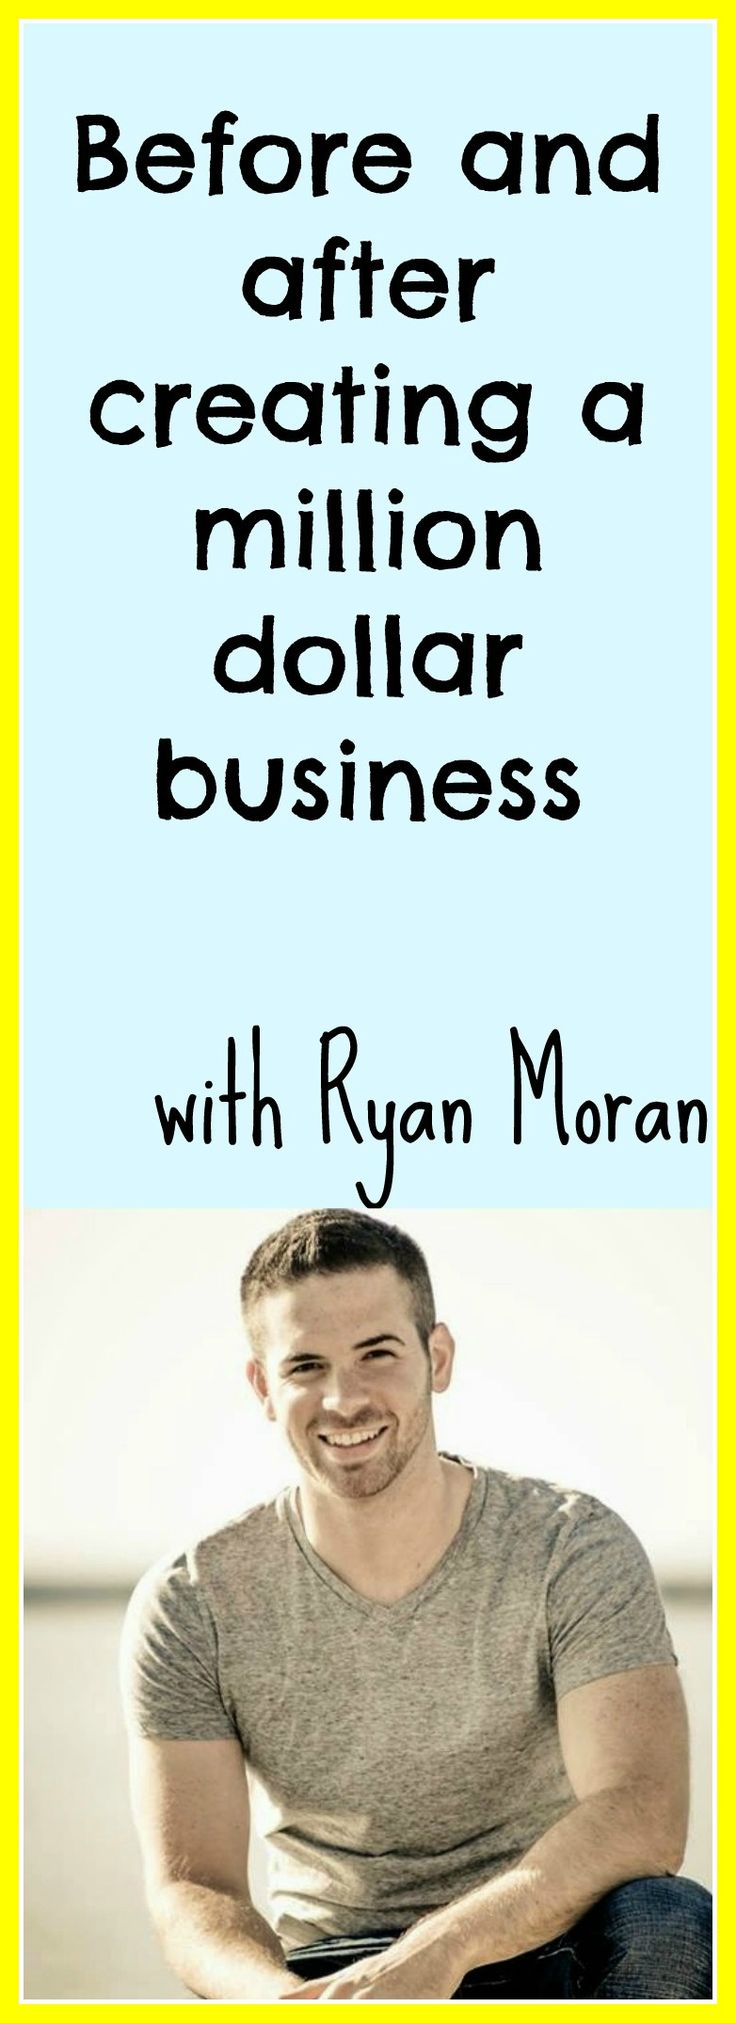 You may have heard of Ryan Moran before: he has a very popular podcast, has a huge fan base, and is very well known for creating a million dollar Amazon-bas ...